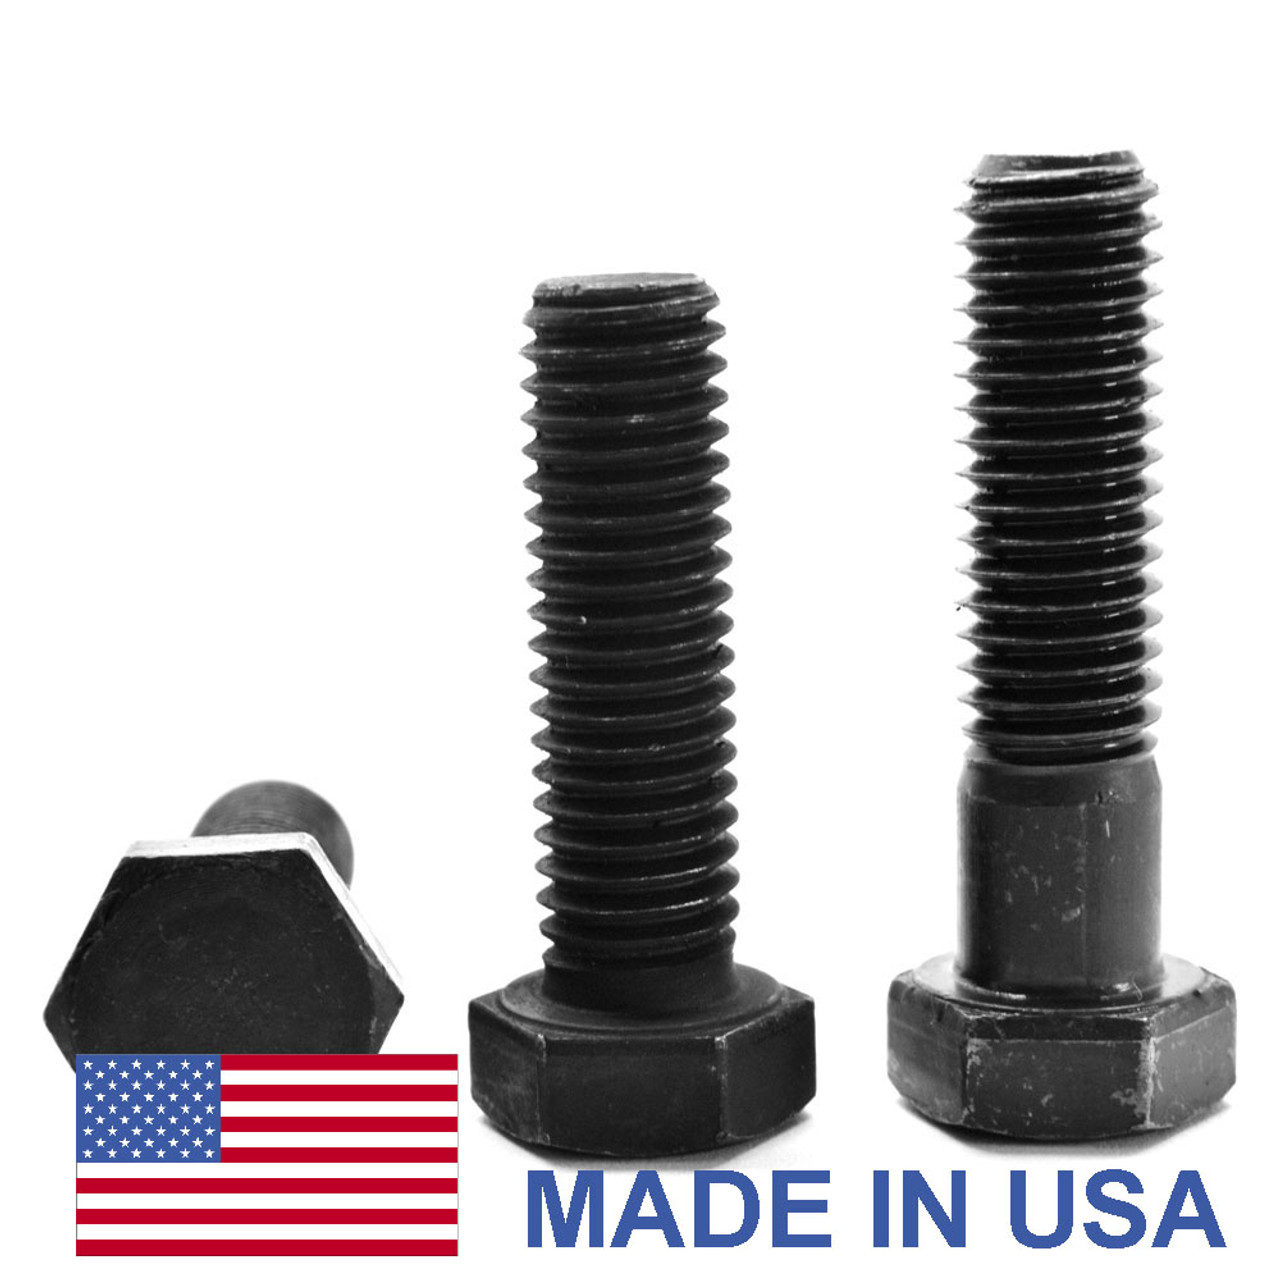 "1 1/4""-7 x 2 1/4"" (FT) Coarse Thread Grade A325 Type 1 Heavy Hex Structural Bolt - USA Medium Carbon Steel Plain Finish"